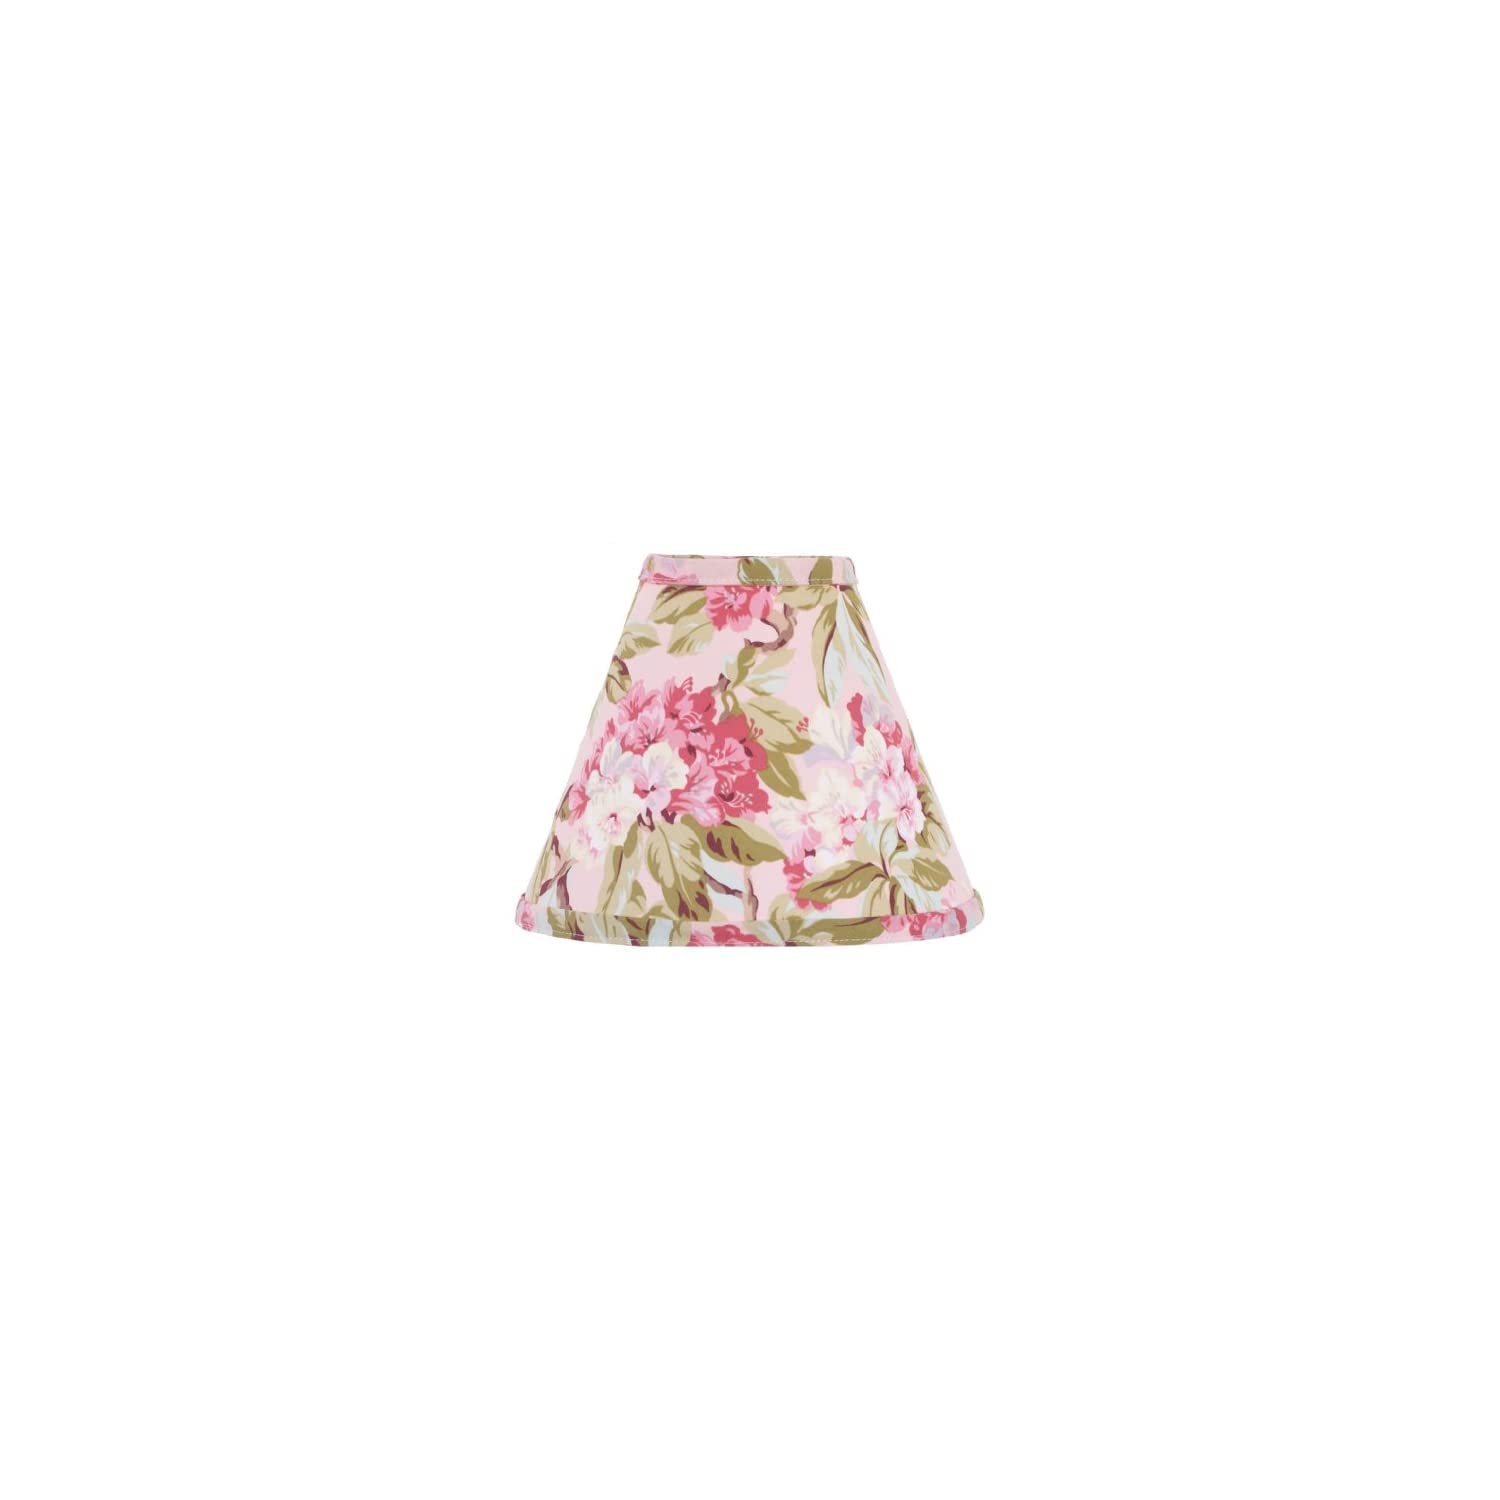 Cotton Tale Designs Lamp Shade, Tea Party